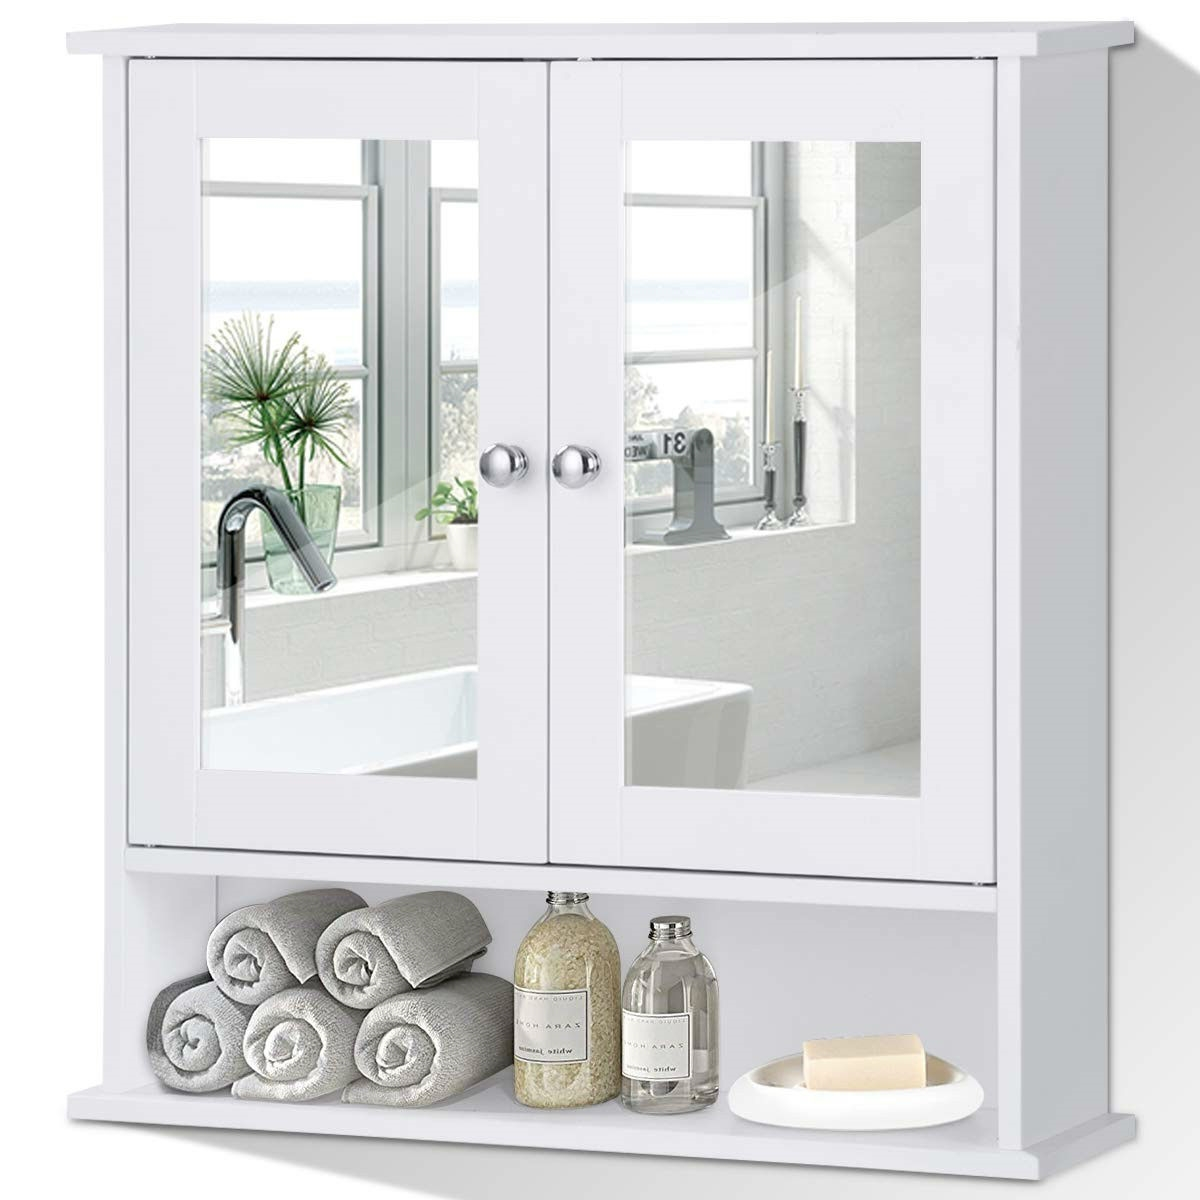 White Bathroom Wall Medicine Cabinet With Mirror And Open Shelf Fastfurnishings Com